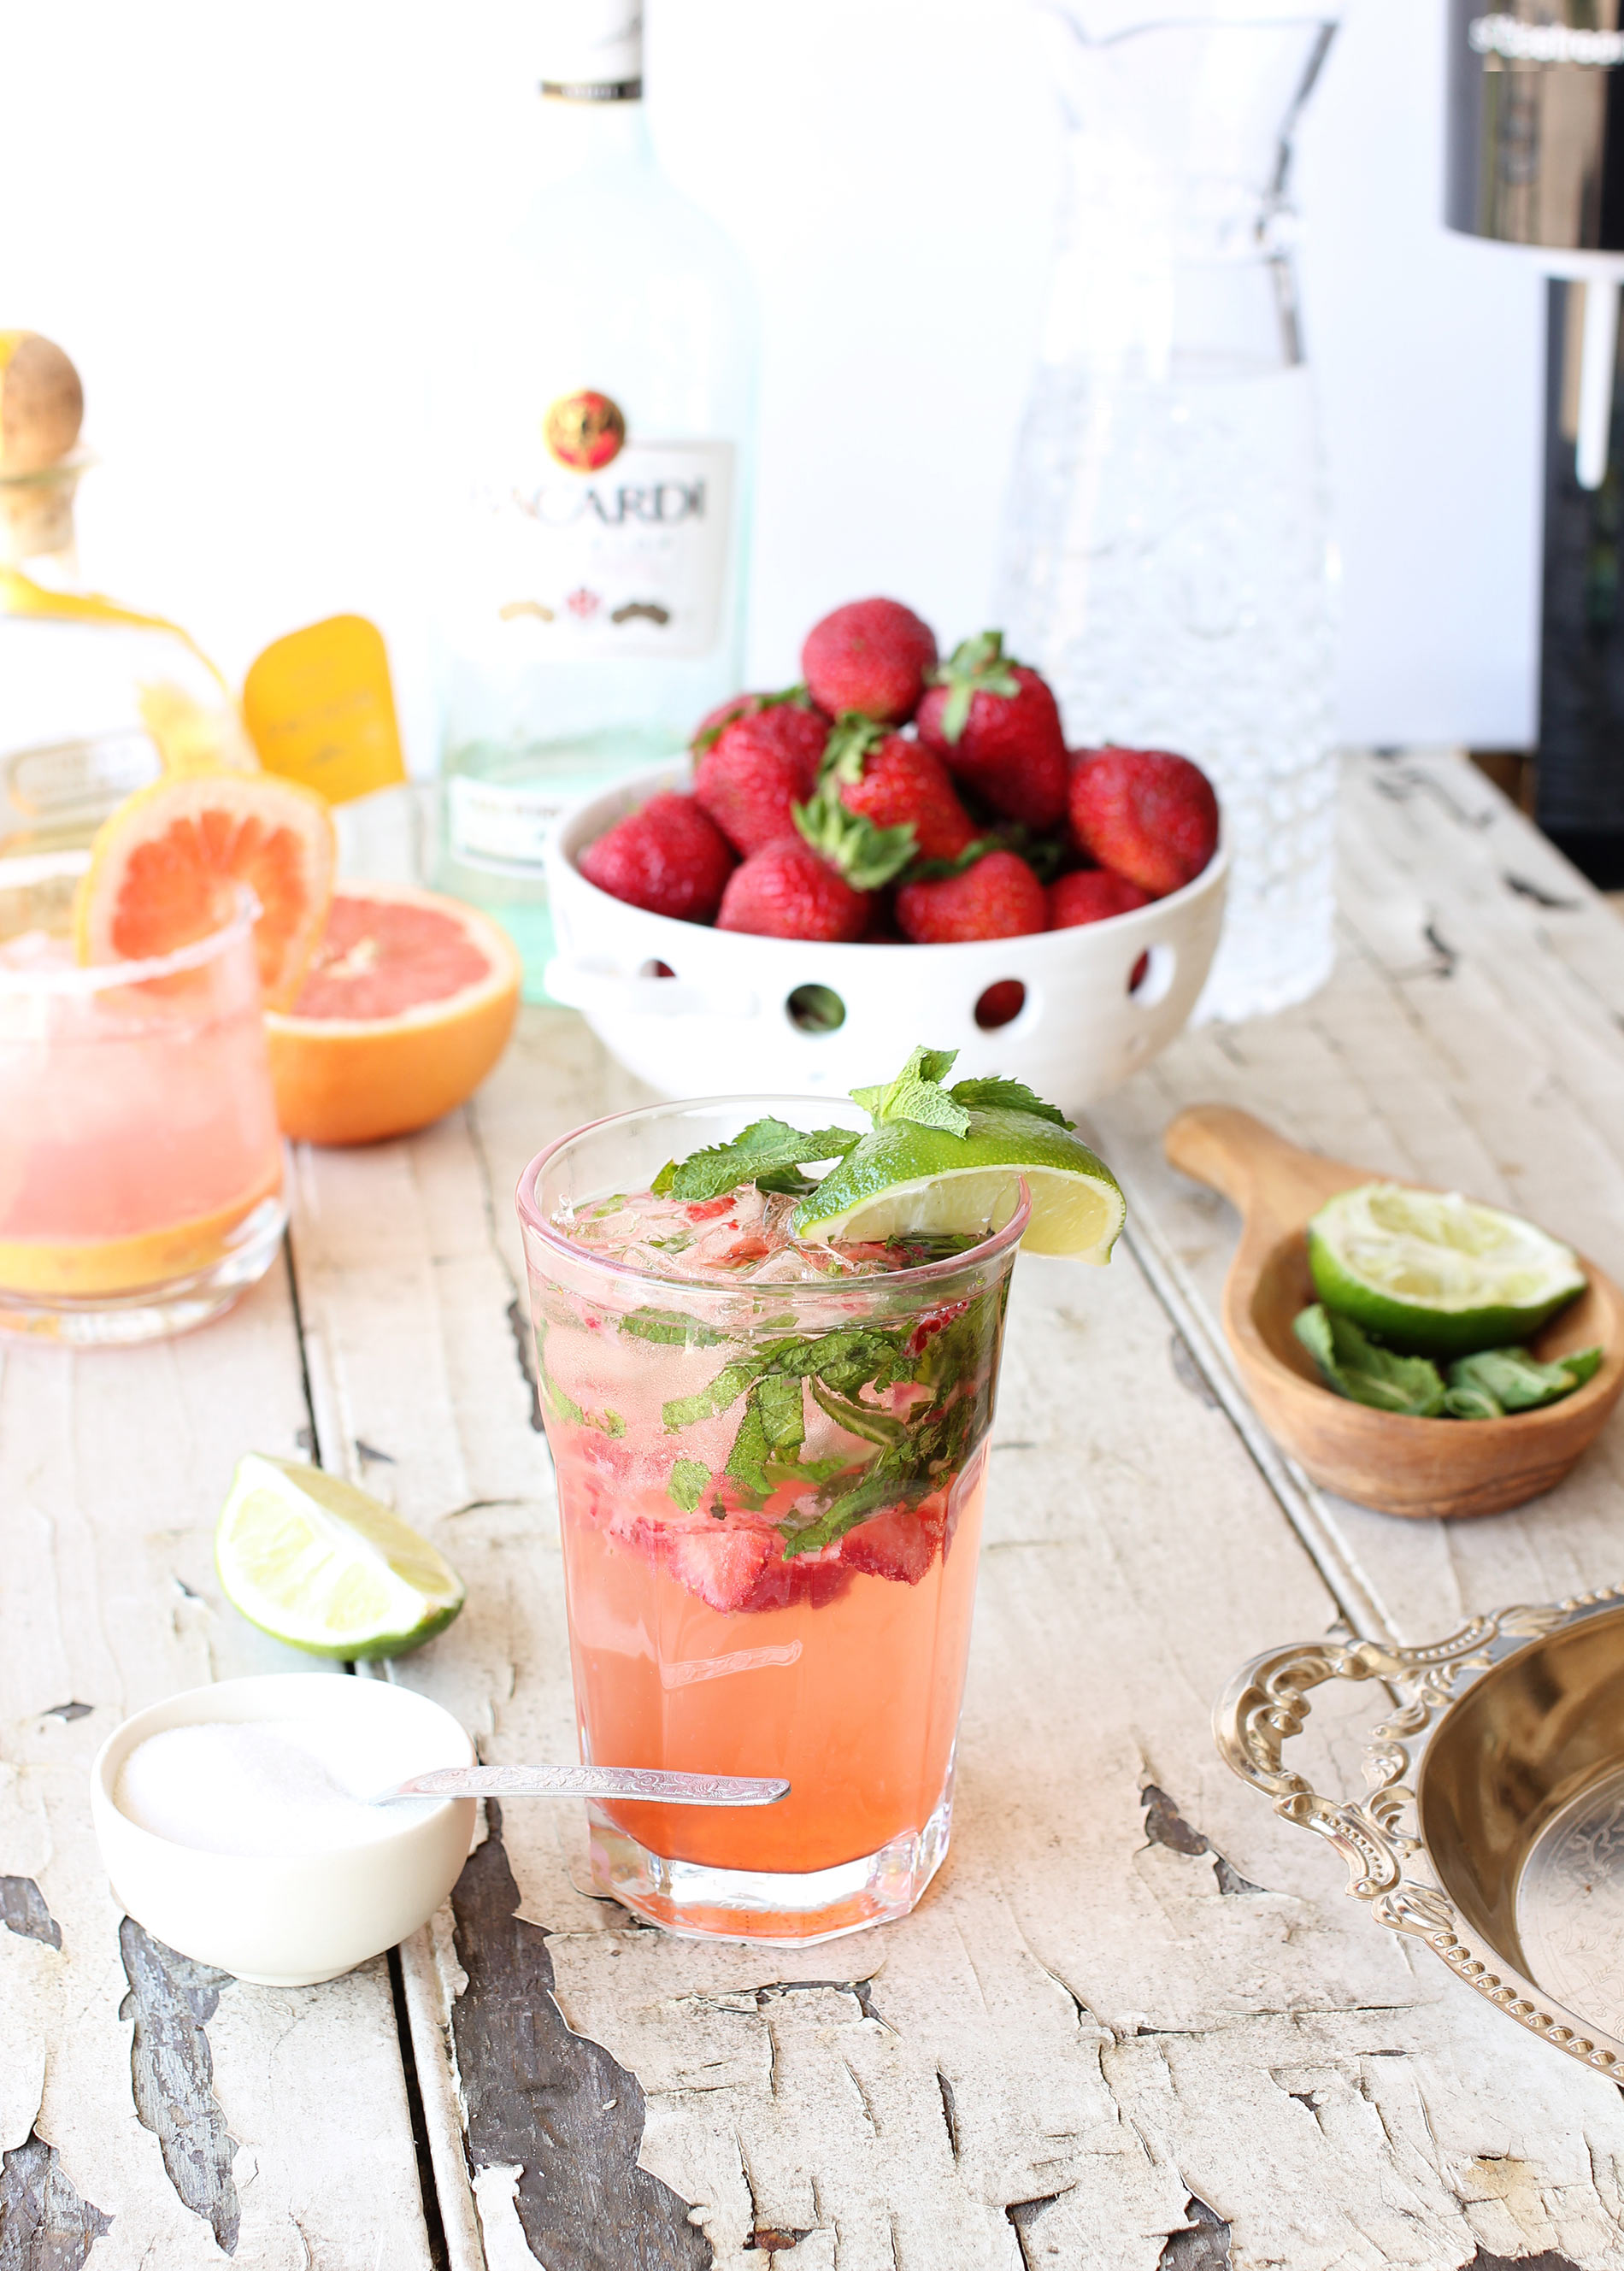 Ontario Local Strawberry and Mint Mojito with SodaStream